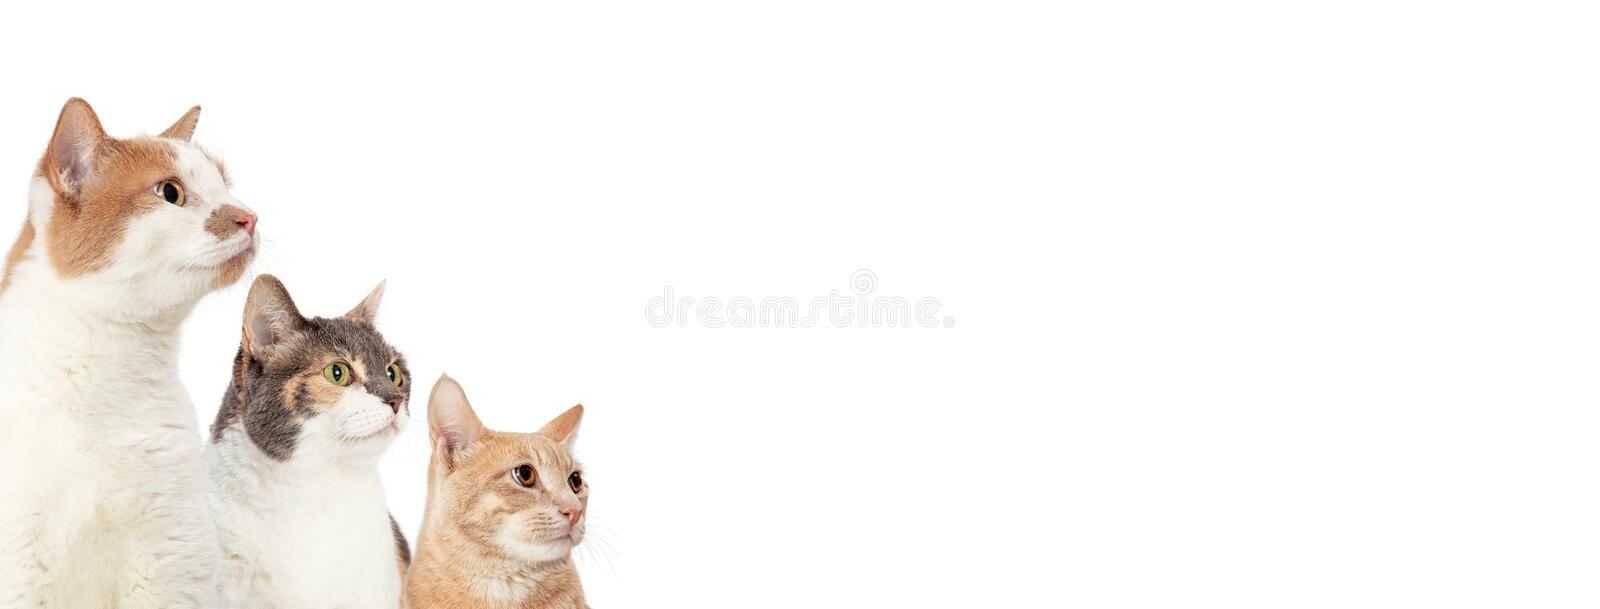 Three Cats Looking Into Blank White Web Banner royalty free stock photos